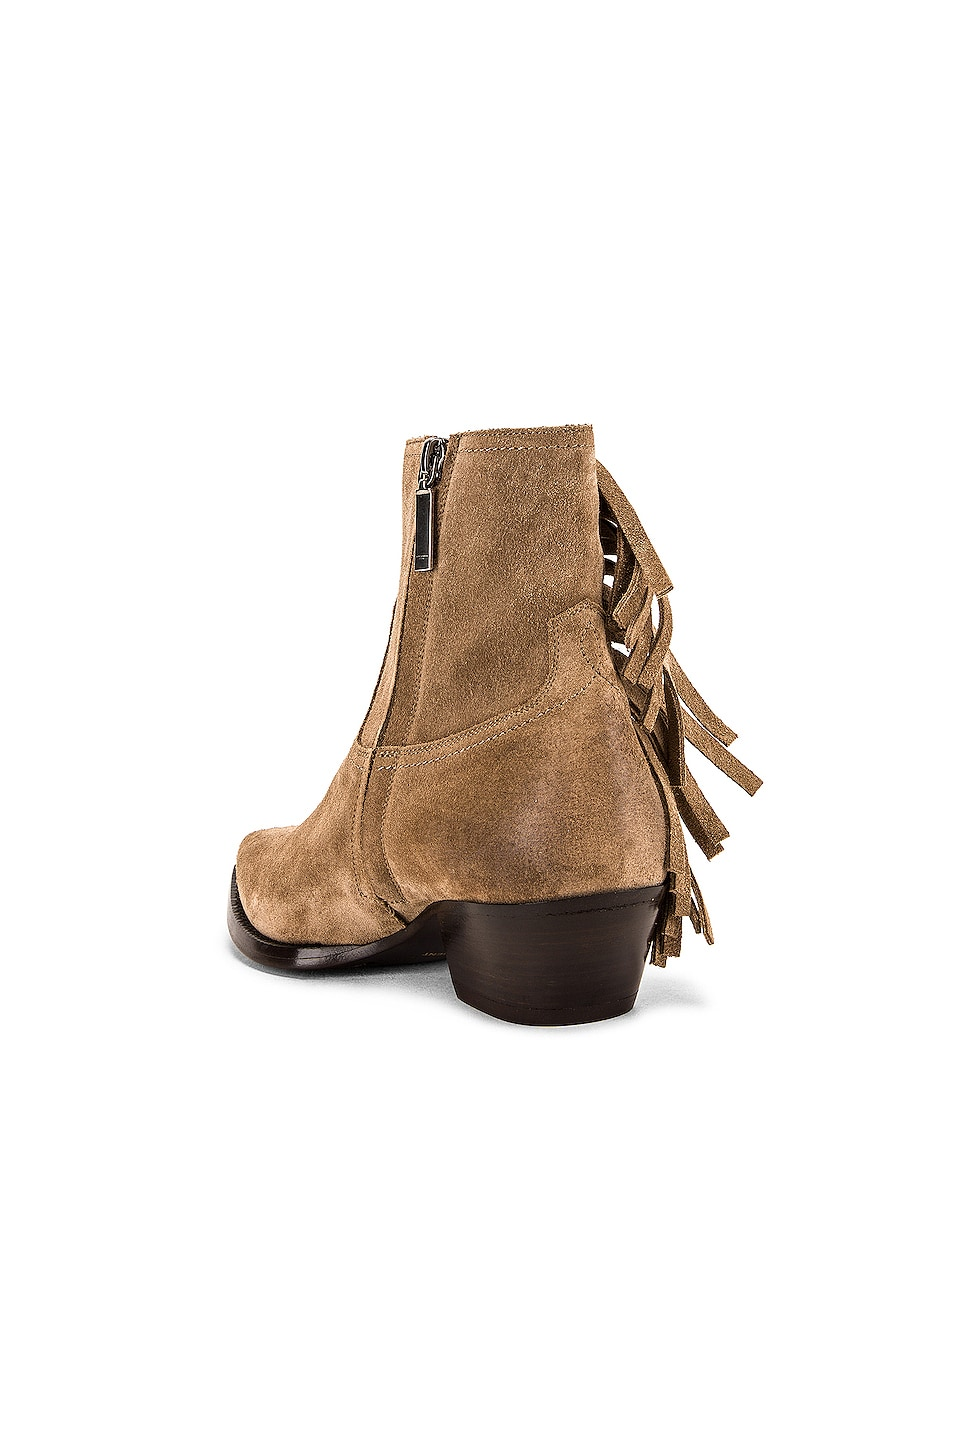 Image 3 of Saint Laurent Lukas Fringe Boots in New Sigaro